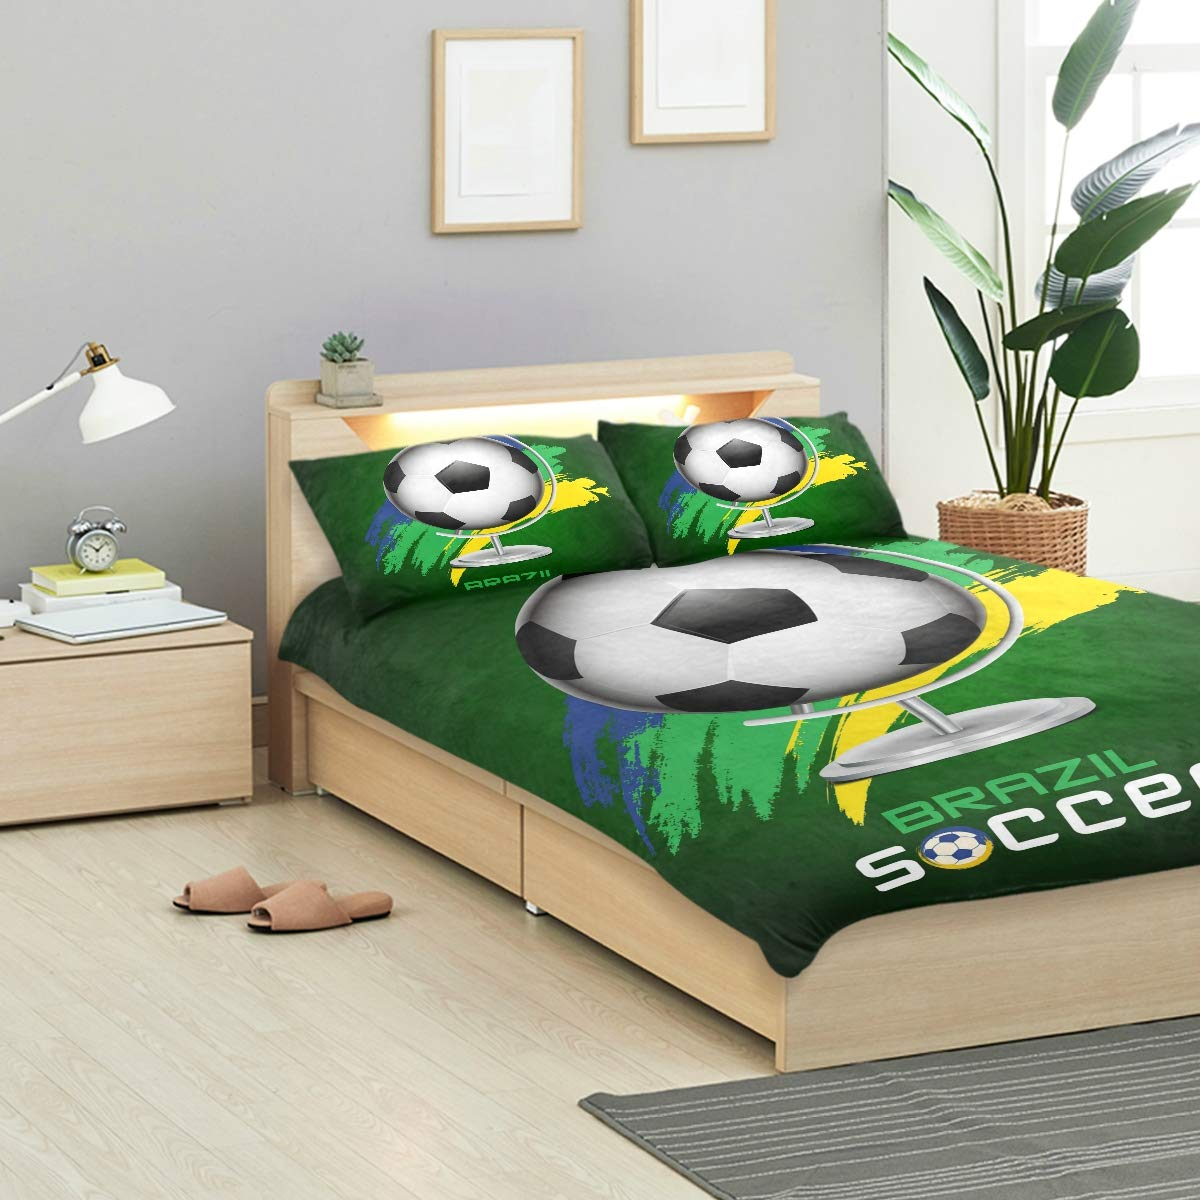 FOLPPLY Brazil Soccer 3 Piece Bedding Set Twin Size 66x90in, Decorative Duvet Cover with 2 Pillow Shams for Boys Girls Teens Adults